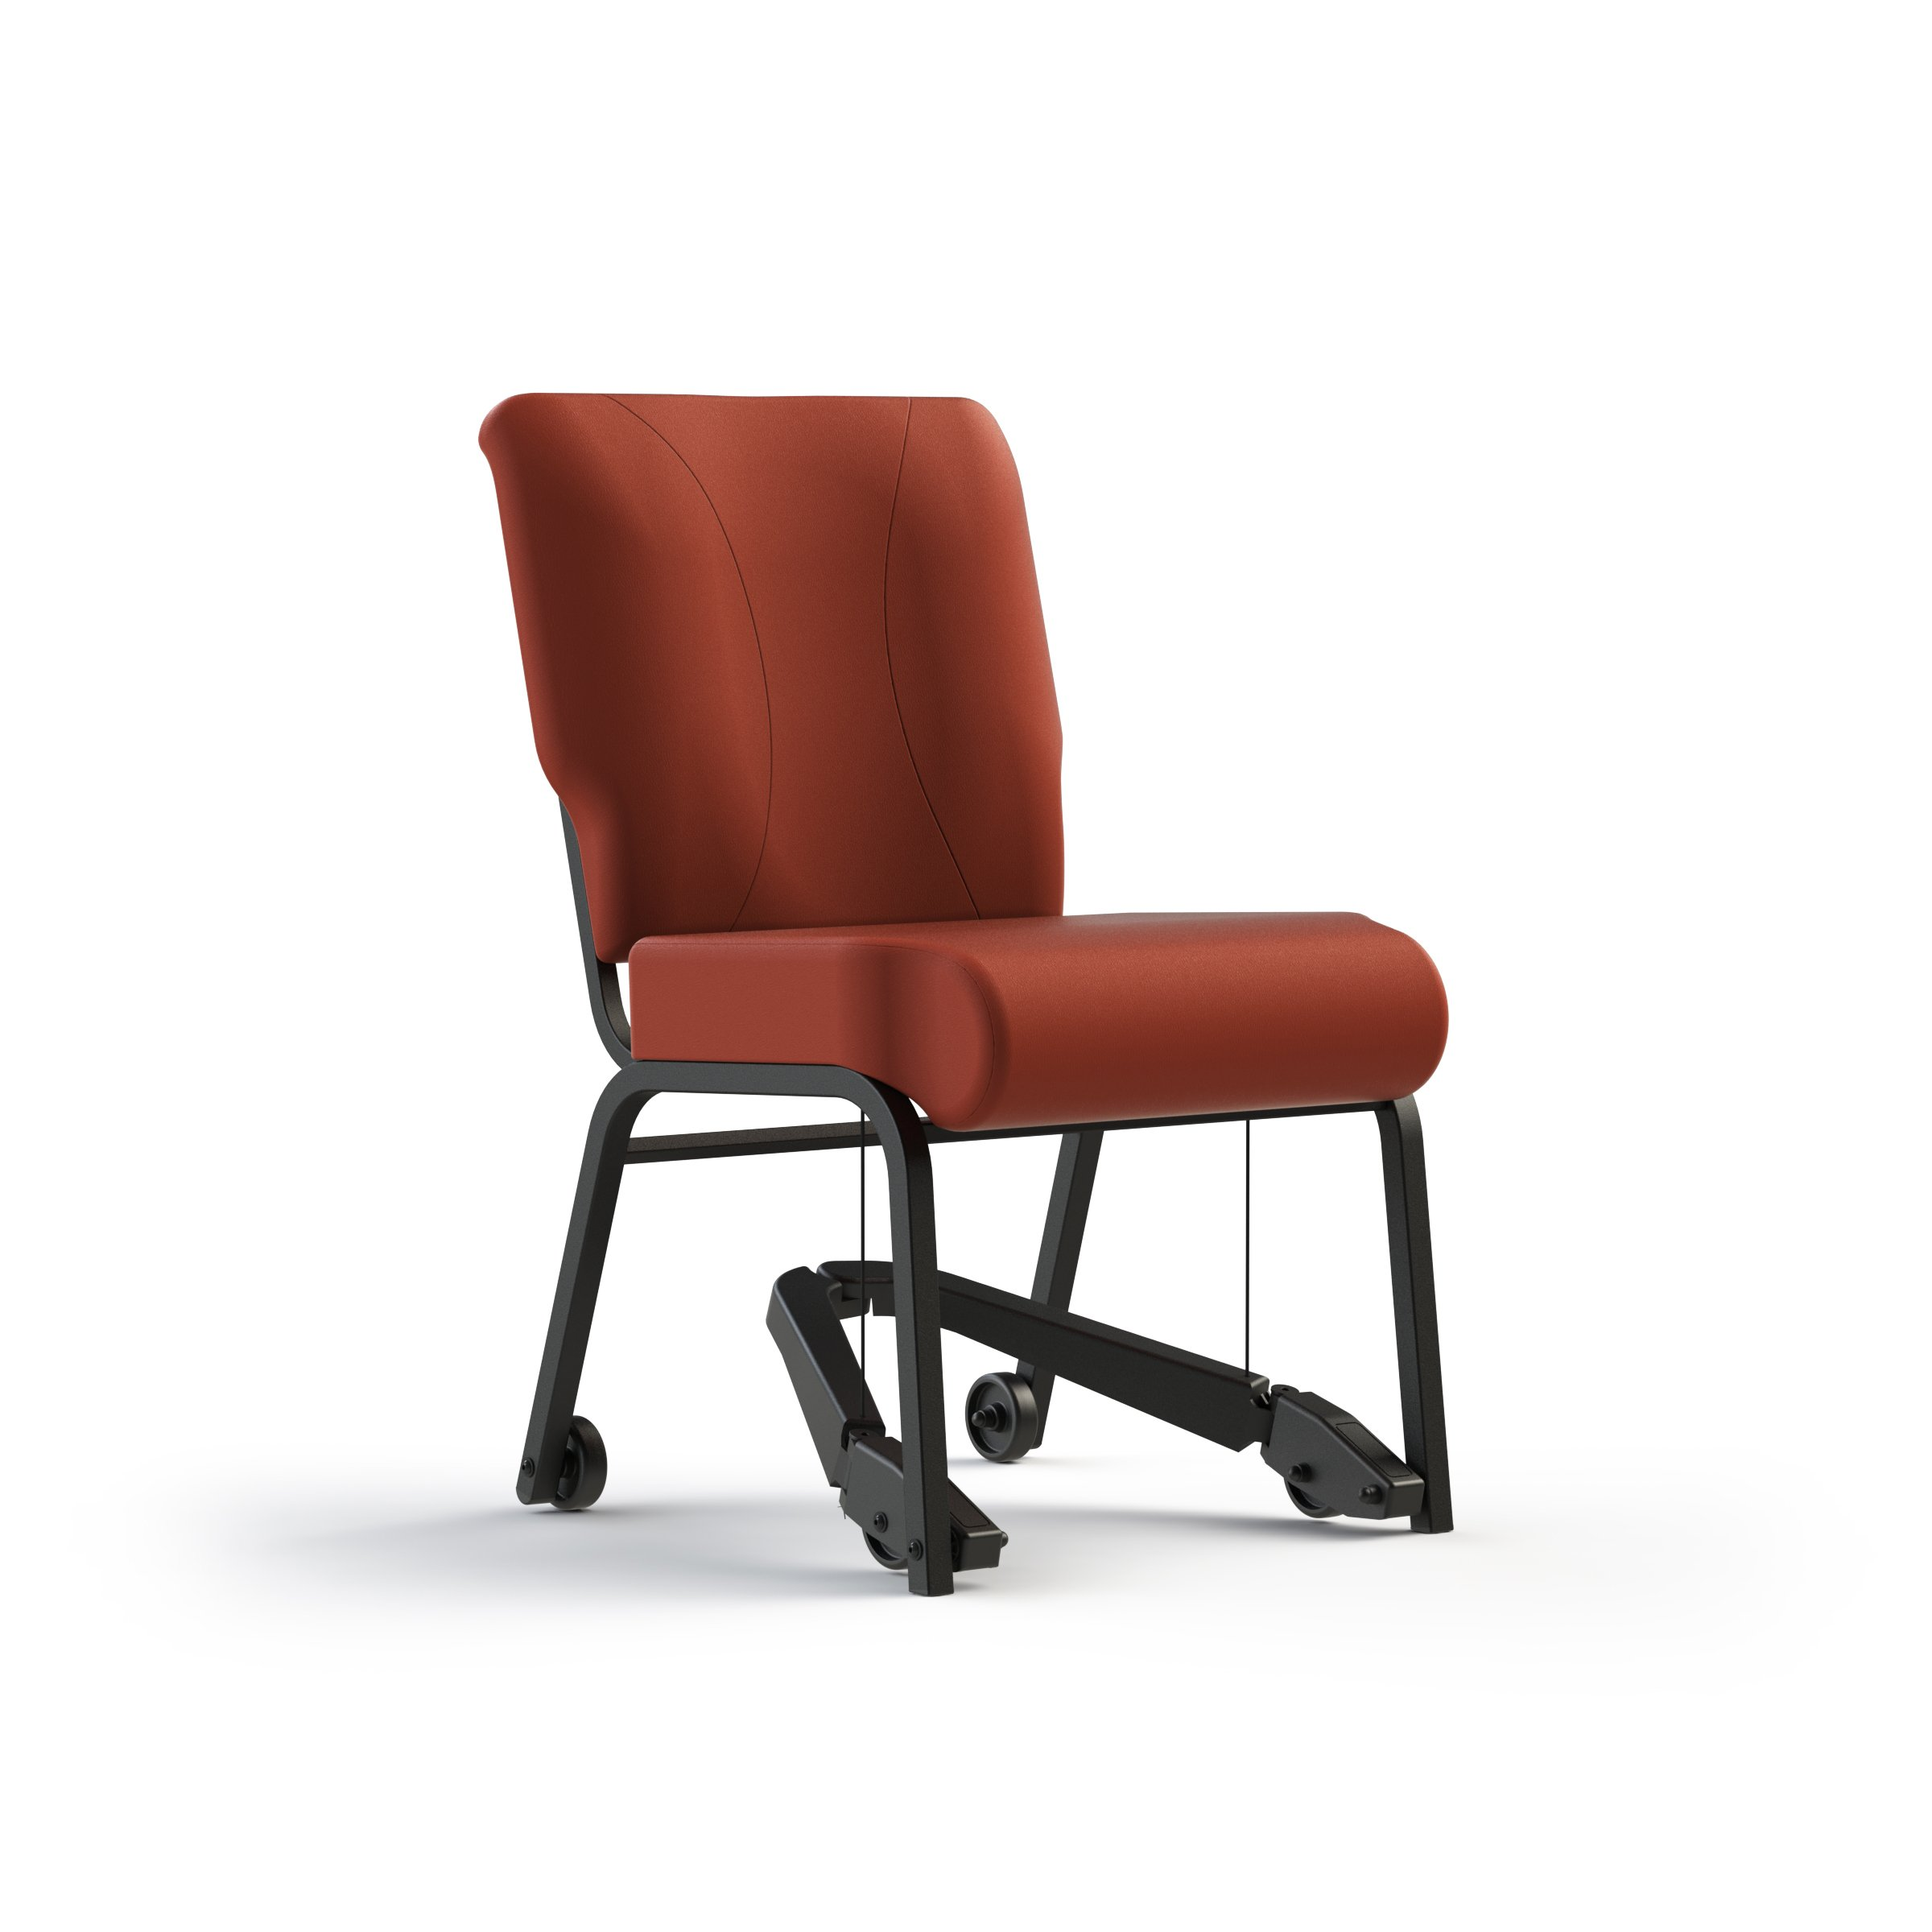 Kitchen/dining chair with mobility assist lever, rated for 250 lbs. ( - it rolls)